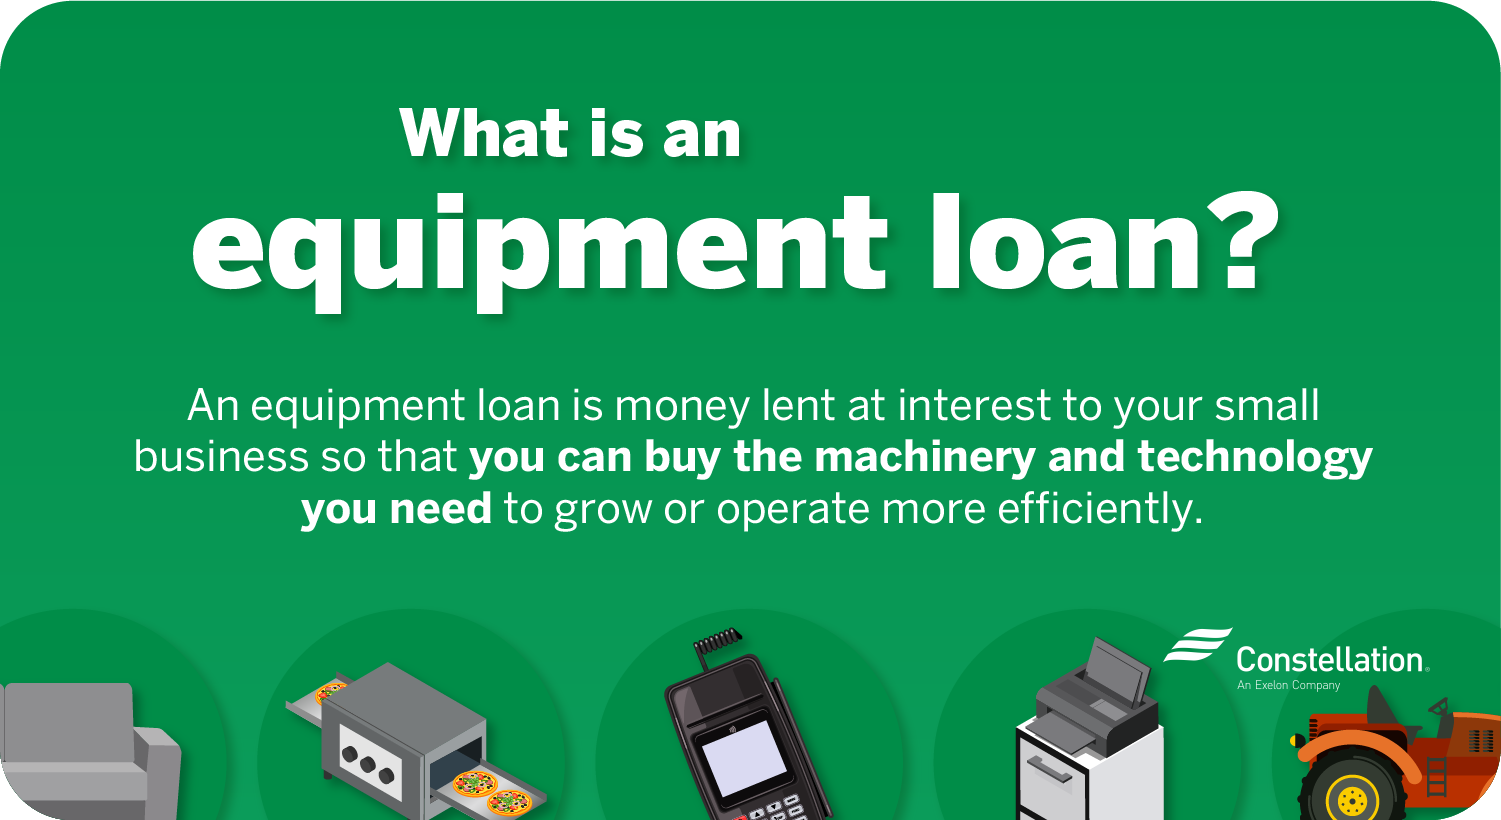 What is a small-business equipment loan?